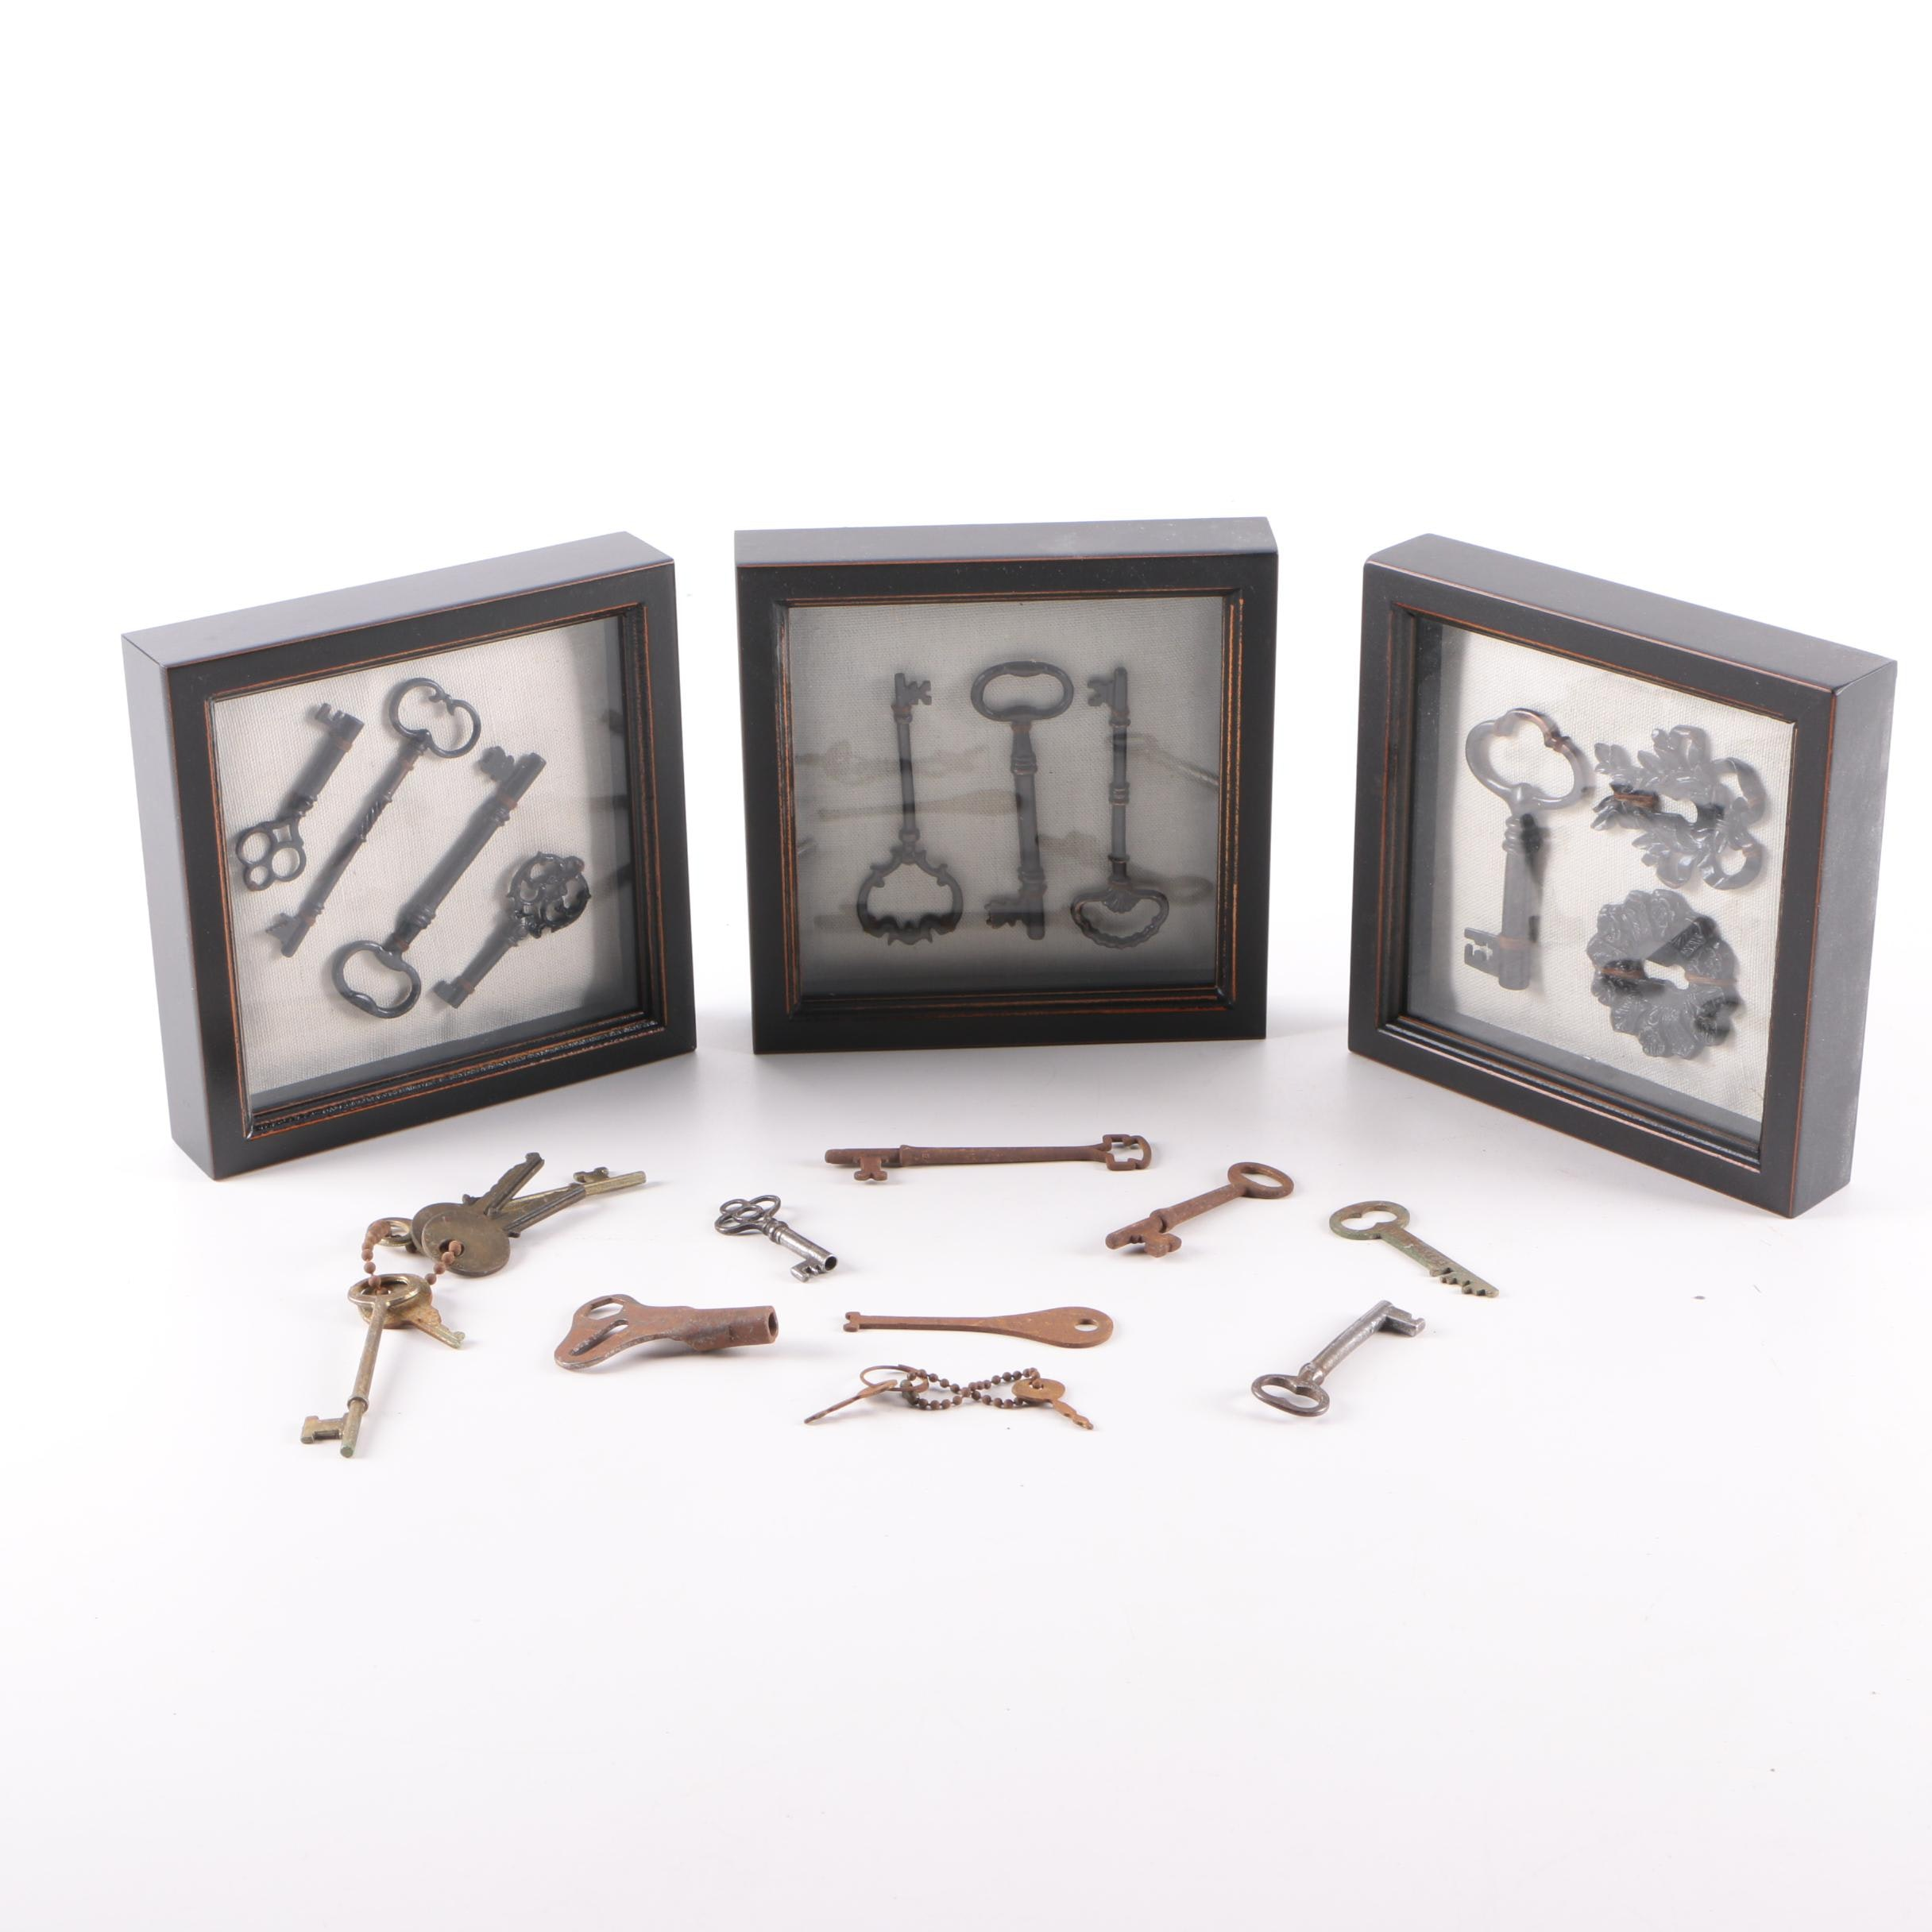 Framed Keys and Key Collection